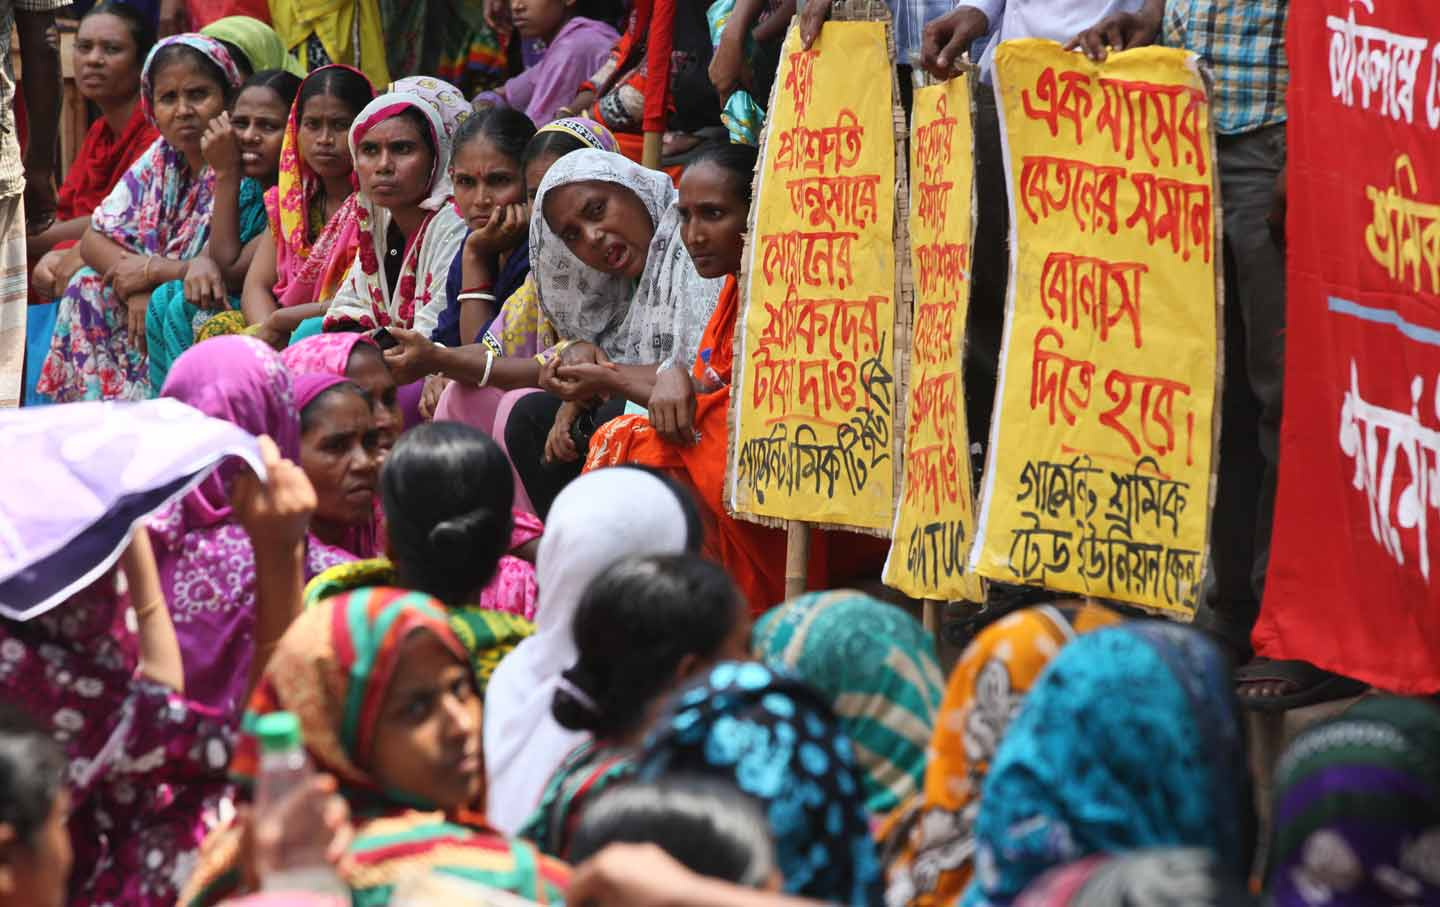 Bangladeshi garment workers rally in Dhaka, demanding salary increases and an Eid al-Adha bonus, September 17, 2015.